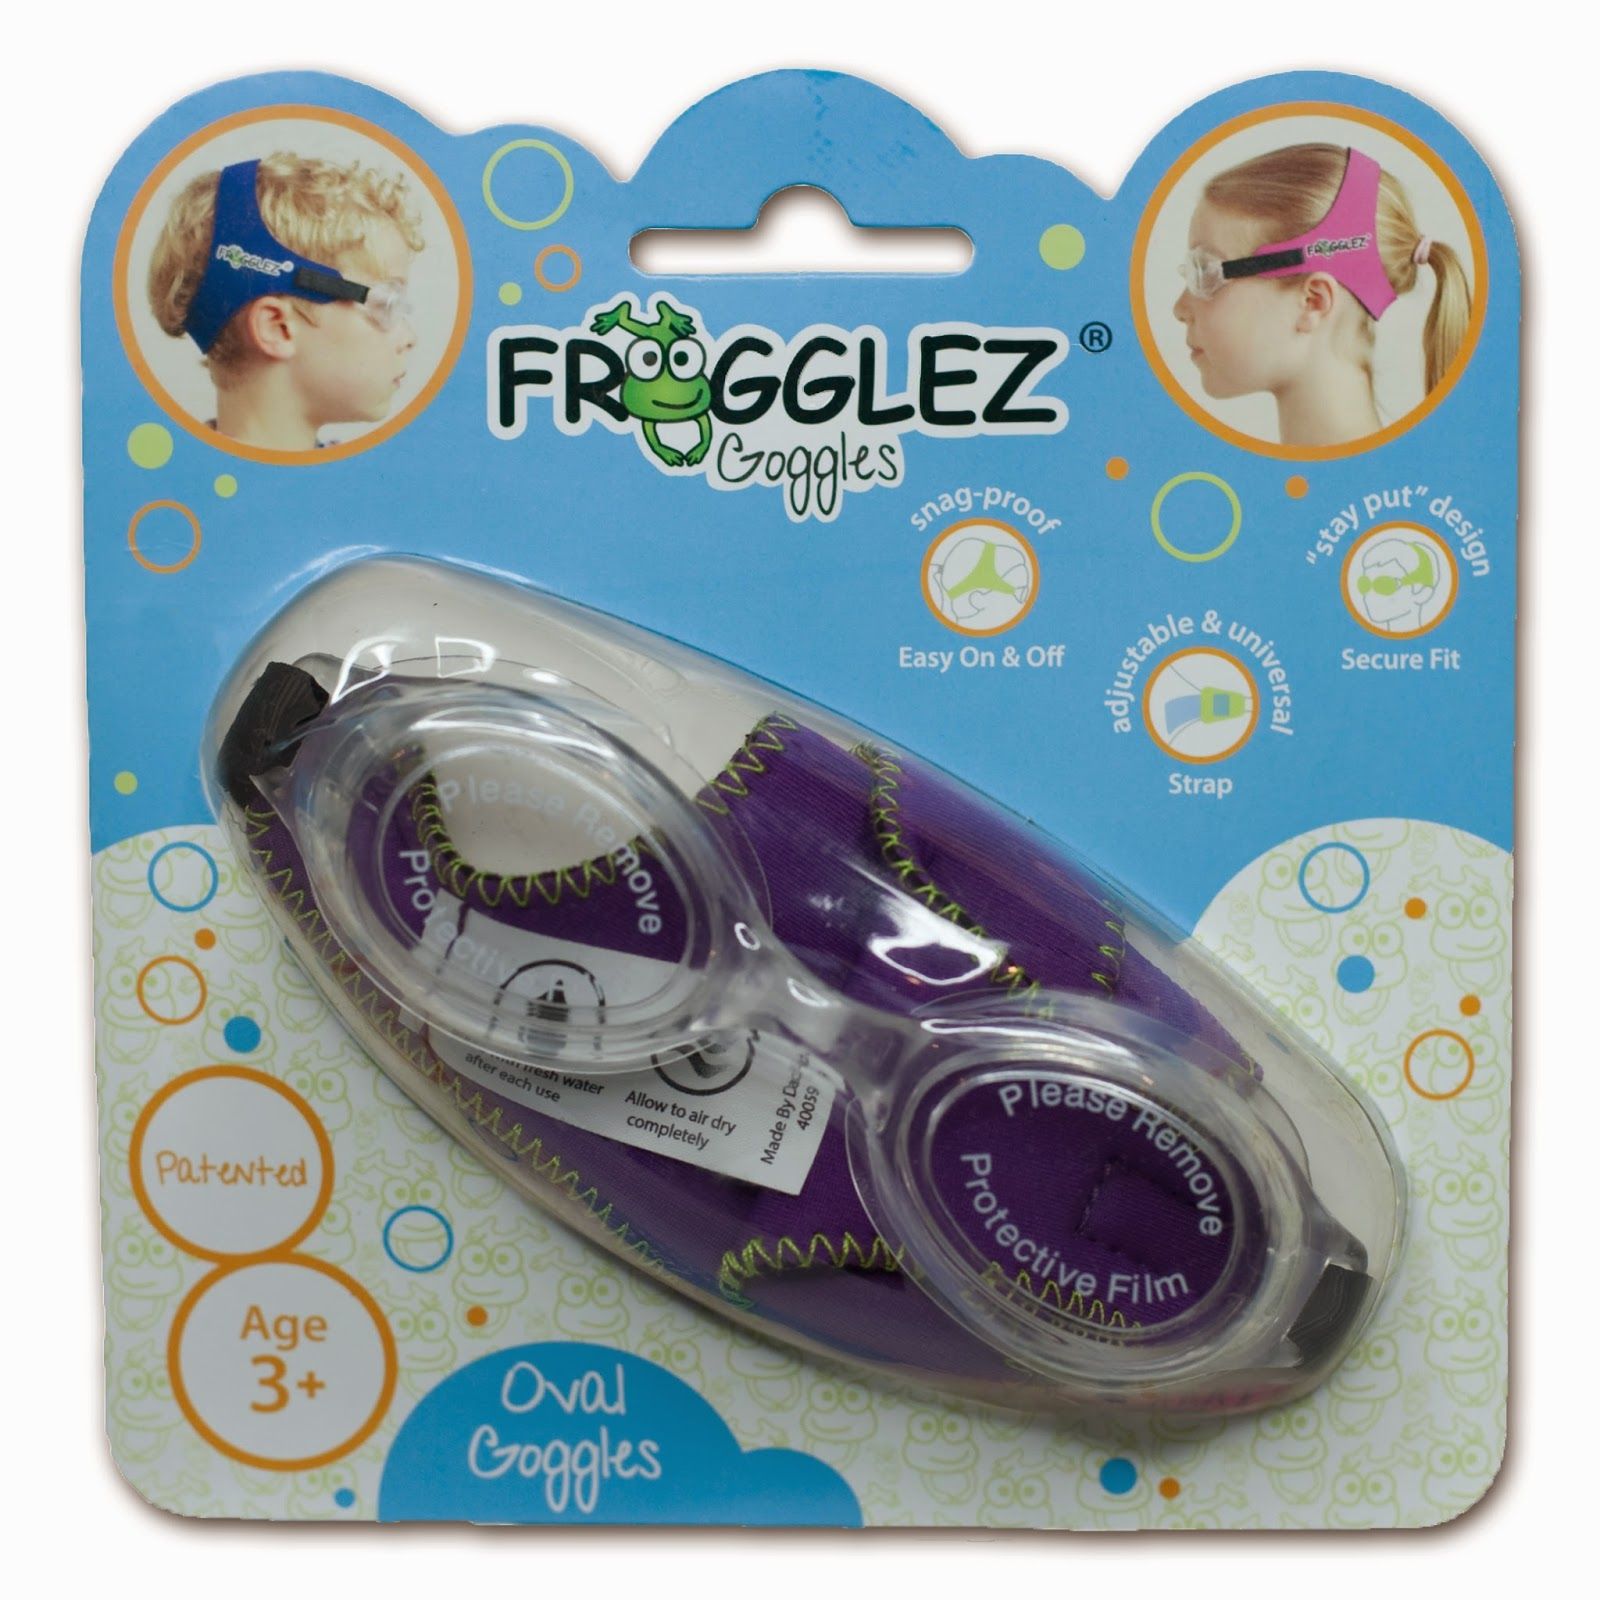 http://www.amazon.com/COMFORTABLE-Frogglez%C2%AE-Swimming-Recommended-Instructors/dp/B00P88ELRC/ref=sr_1_2?ie=UTF8&qid=1428975524&sr=8-2&keywords=frogglez